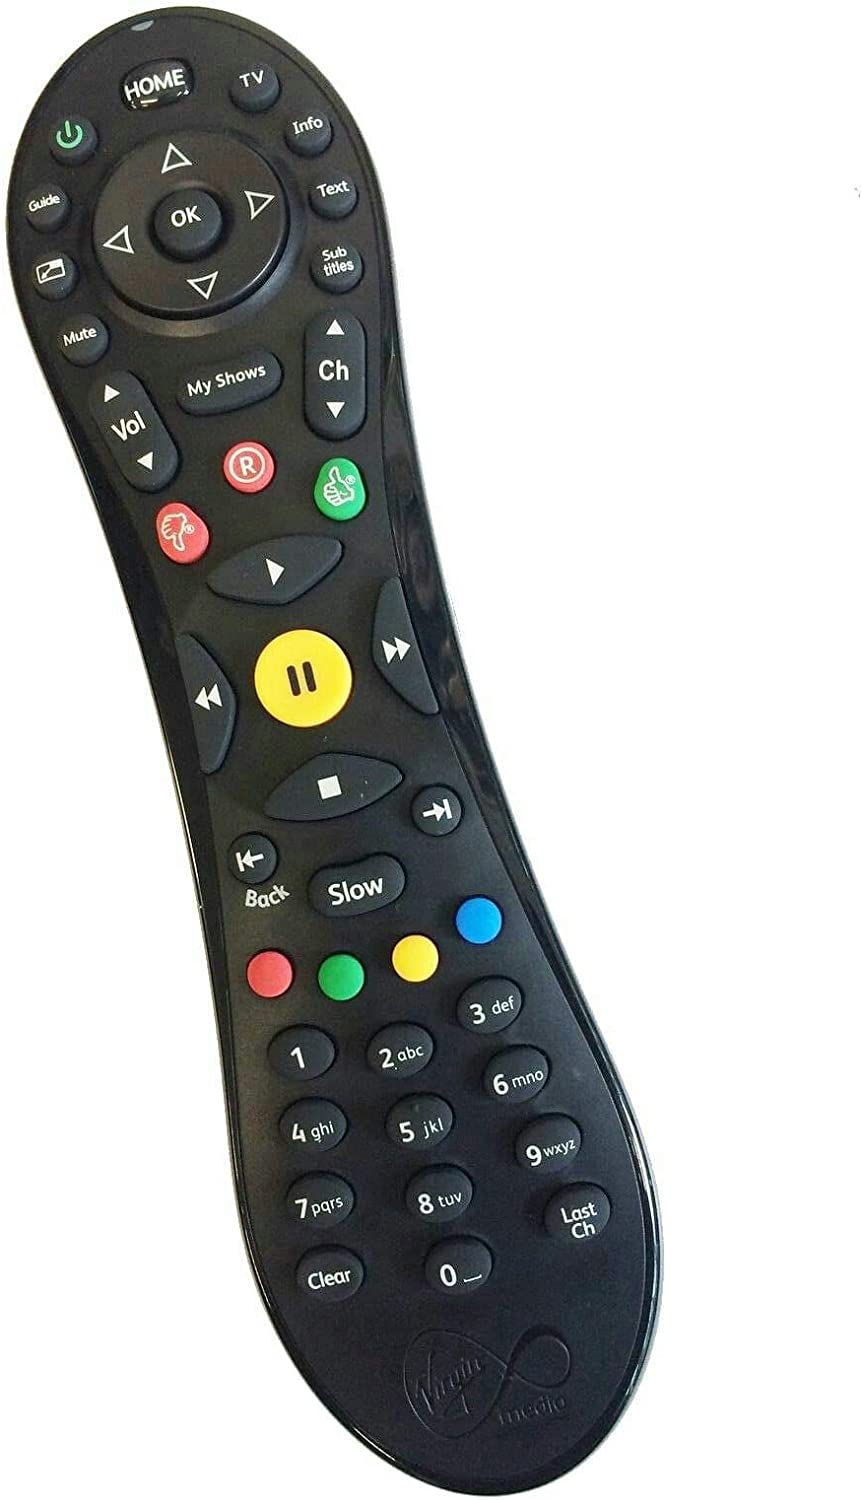 Virgin Media TiVo Remote 100% Genuine, WITH 2 X AA BATTERIES INCLUDED:  Amazon.co.uk: Electronics & Photo